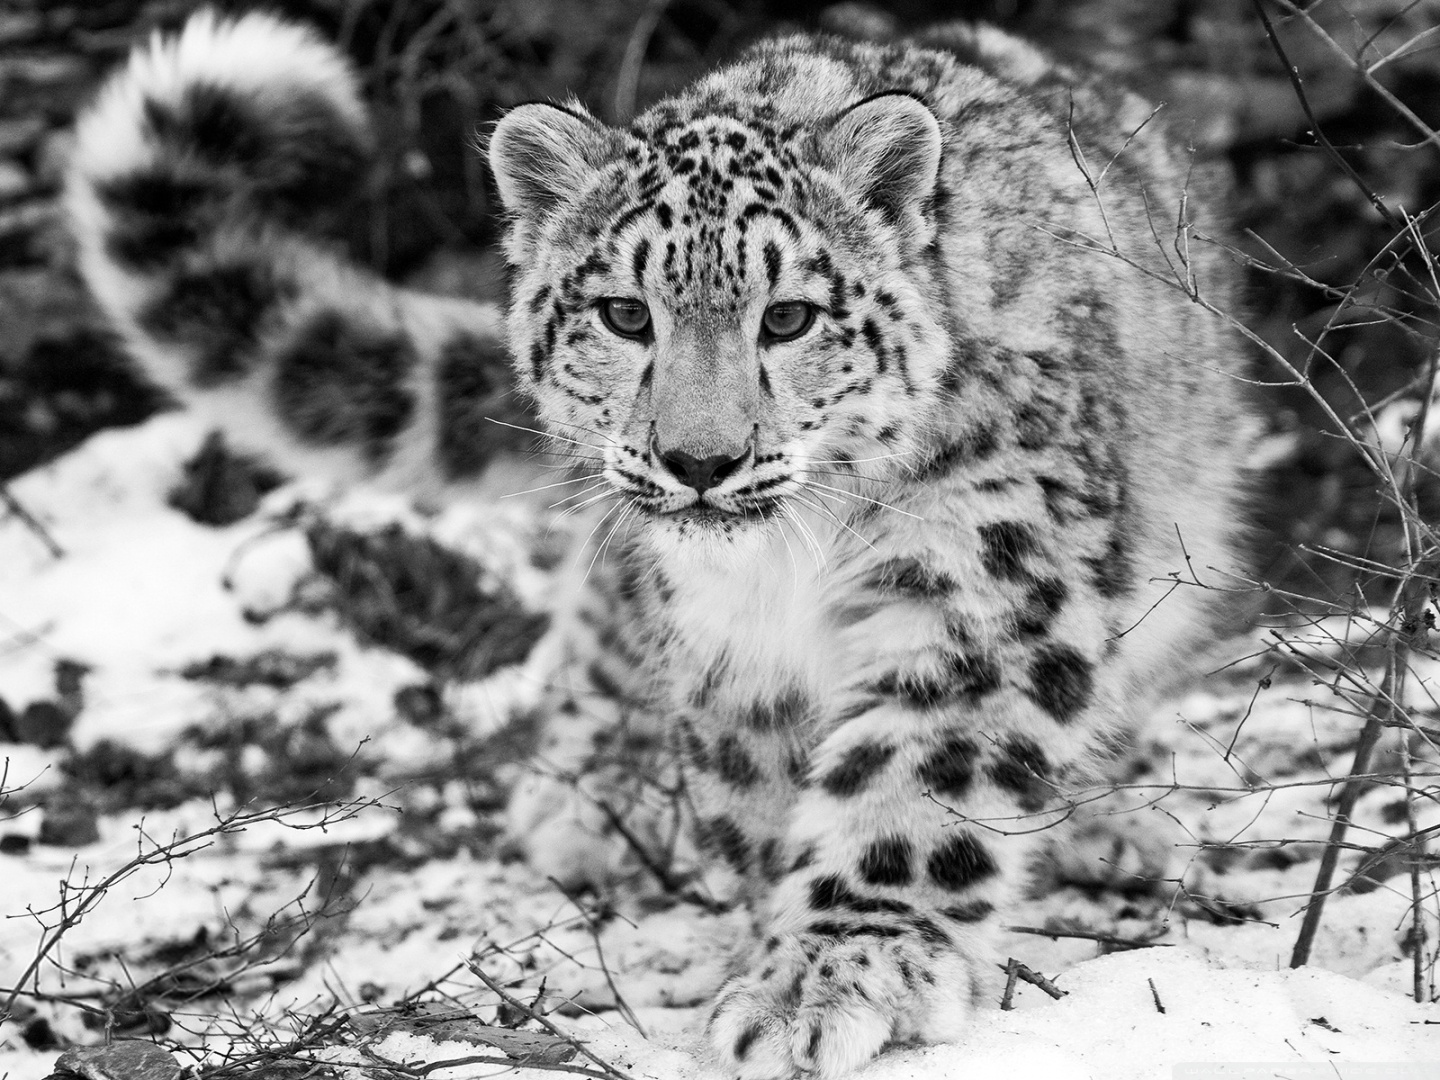 Snow Leopard Facts History Useful Information and Amazing Pictures